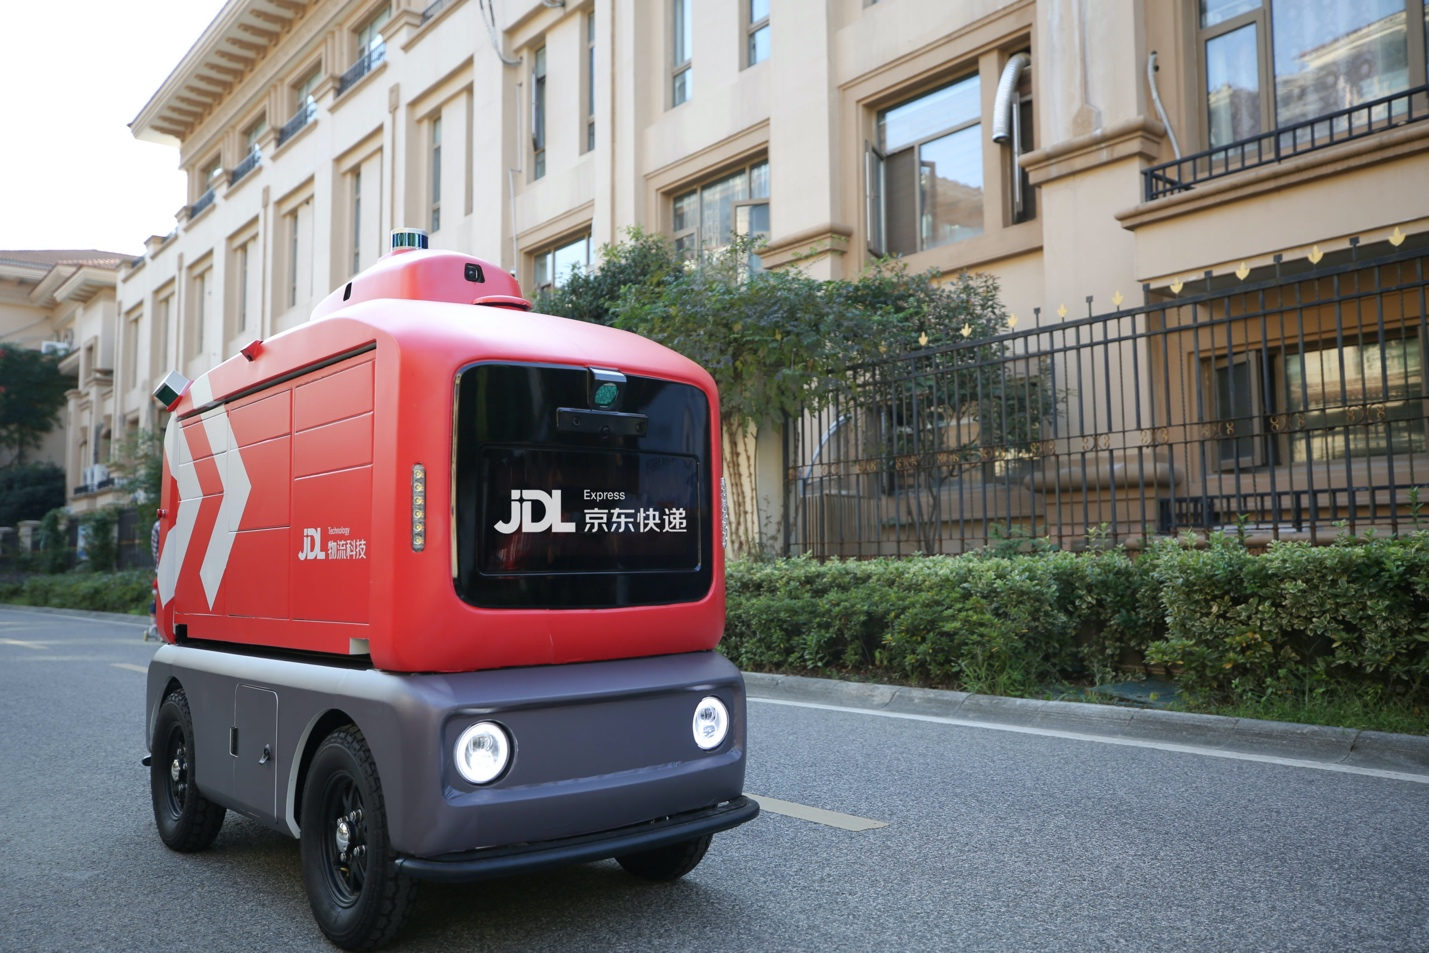 JD Adopts Smart Delivery Vehicle in Shijiazhuang - JD Corporate Blog